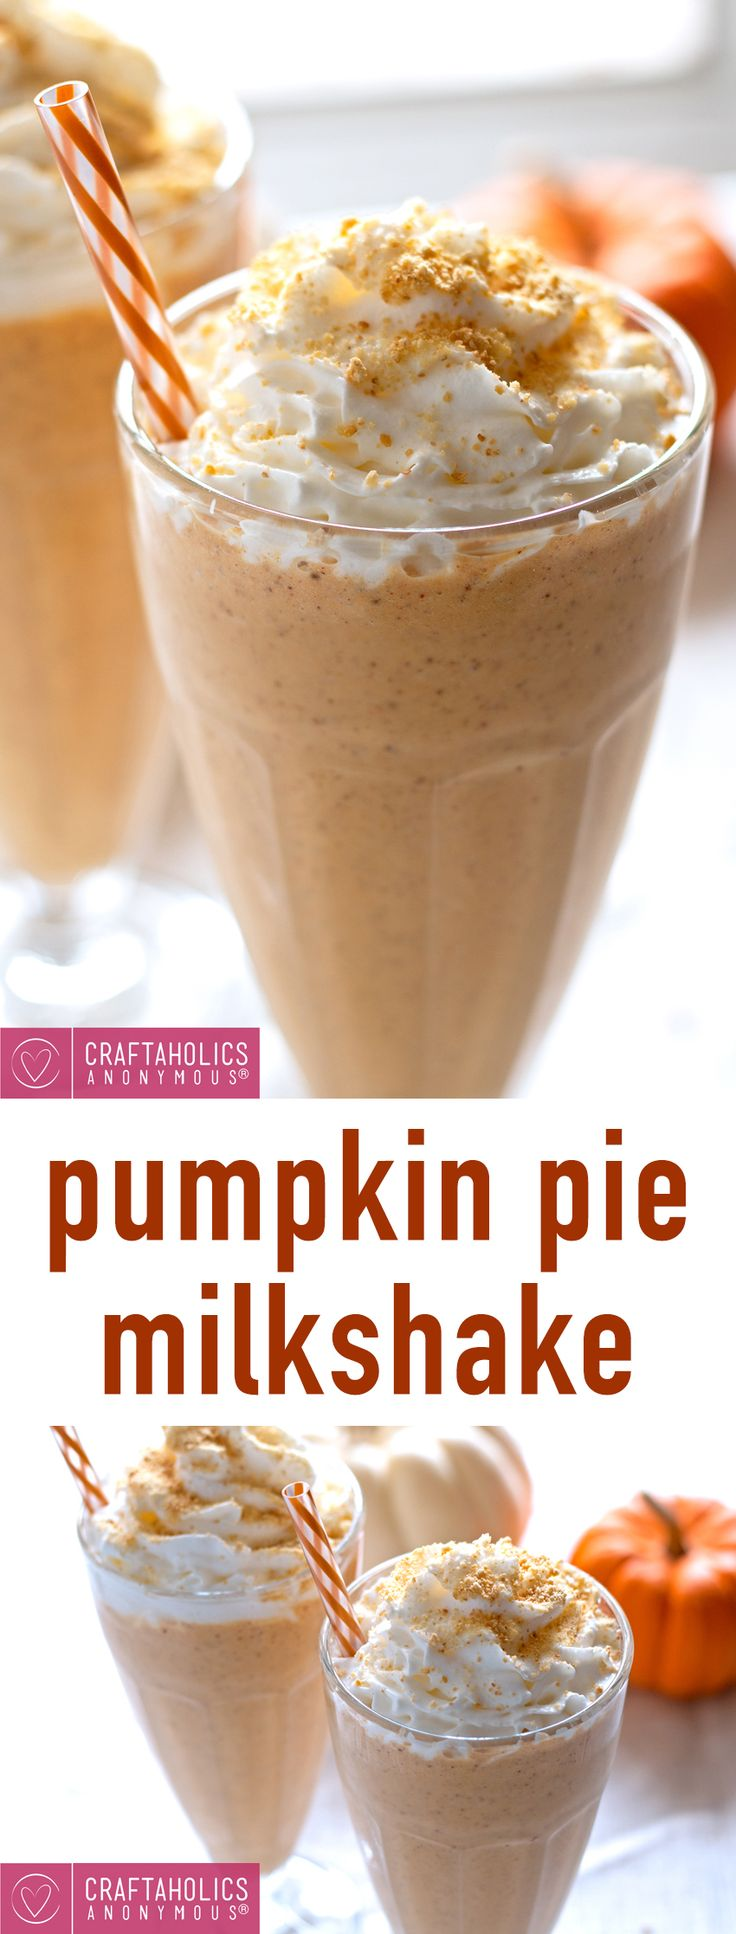 Amazing Pumpkin Pie Milkshake recipe || Yummy fall treat full of flavor and deliciousness!